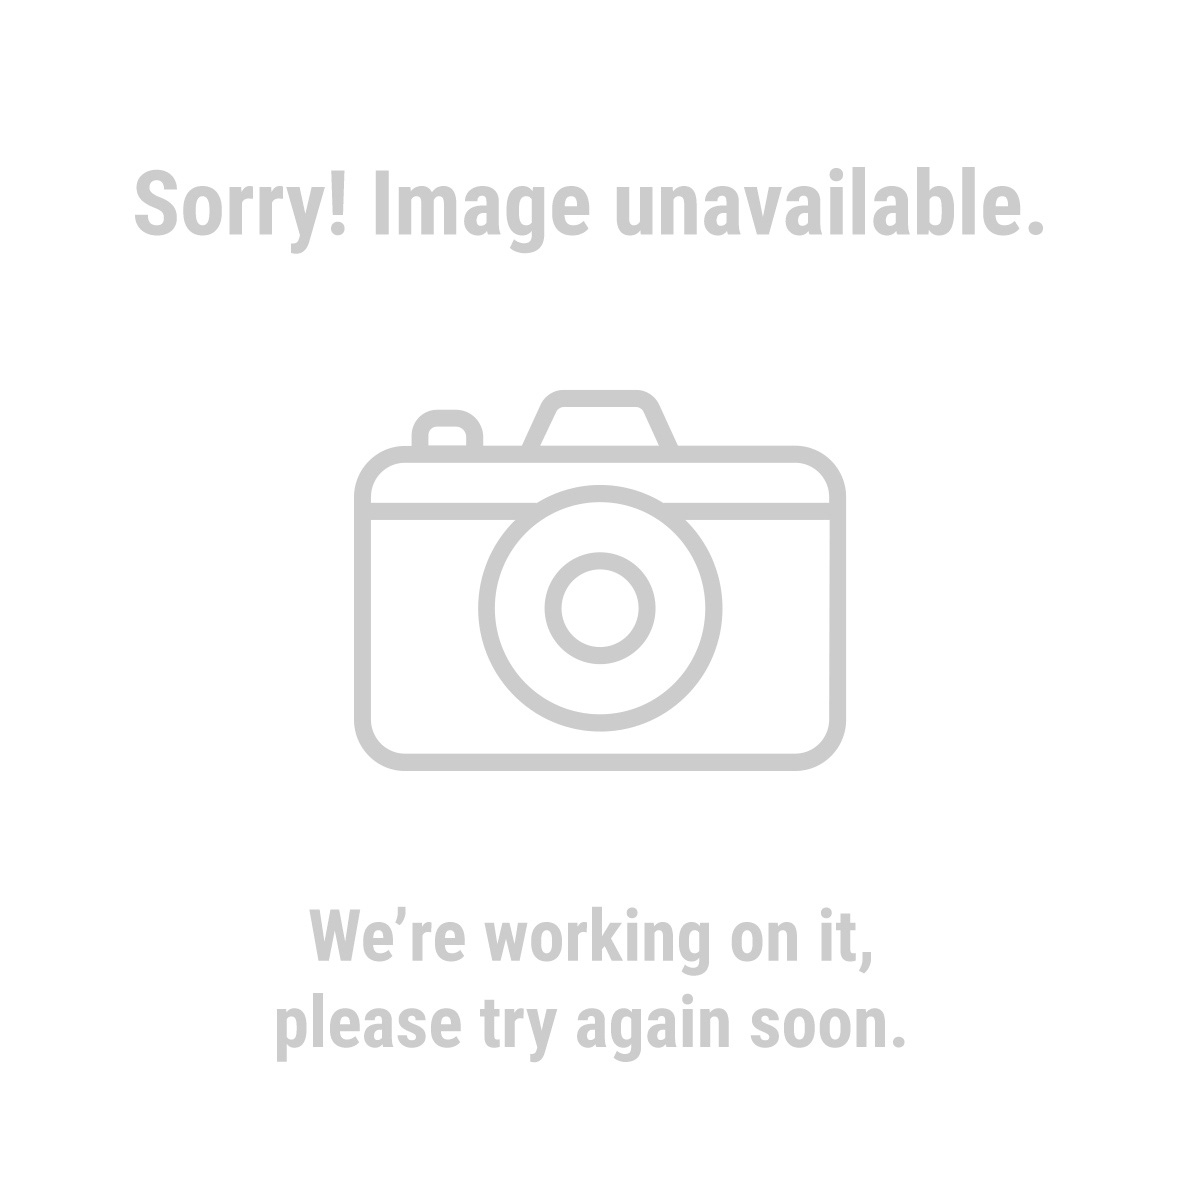 HARDY 66376 Nylon Knit Gloves with Nitrile Palms, X-Large